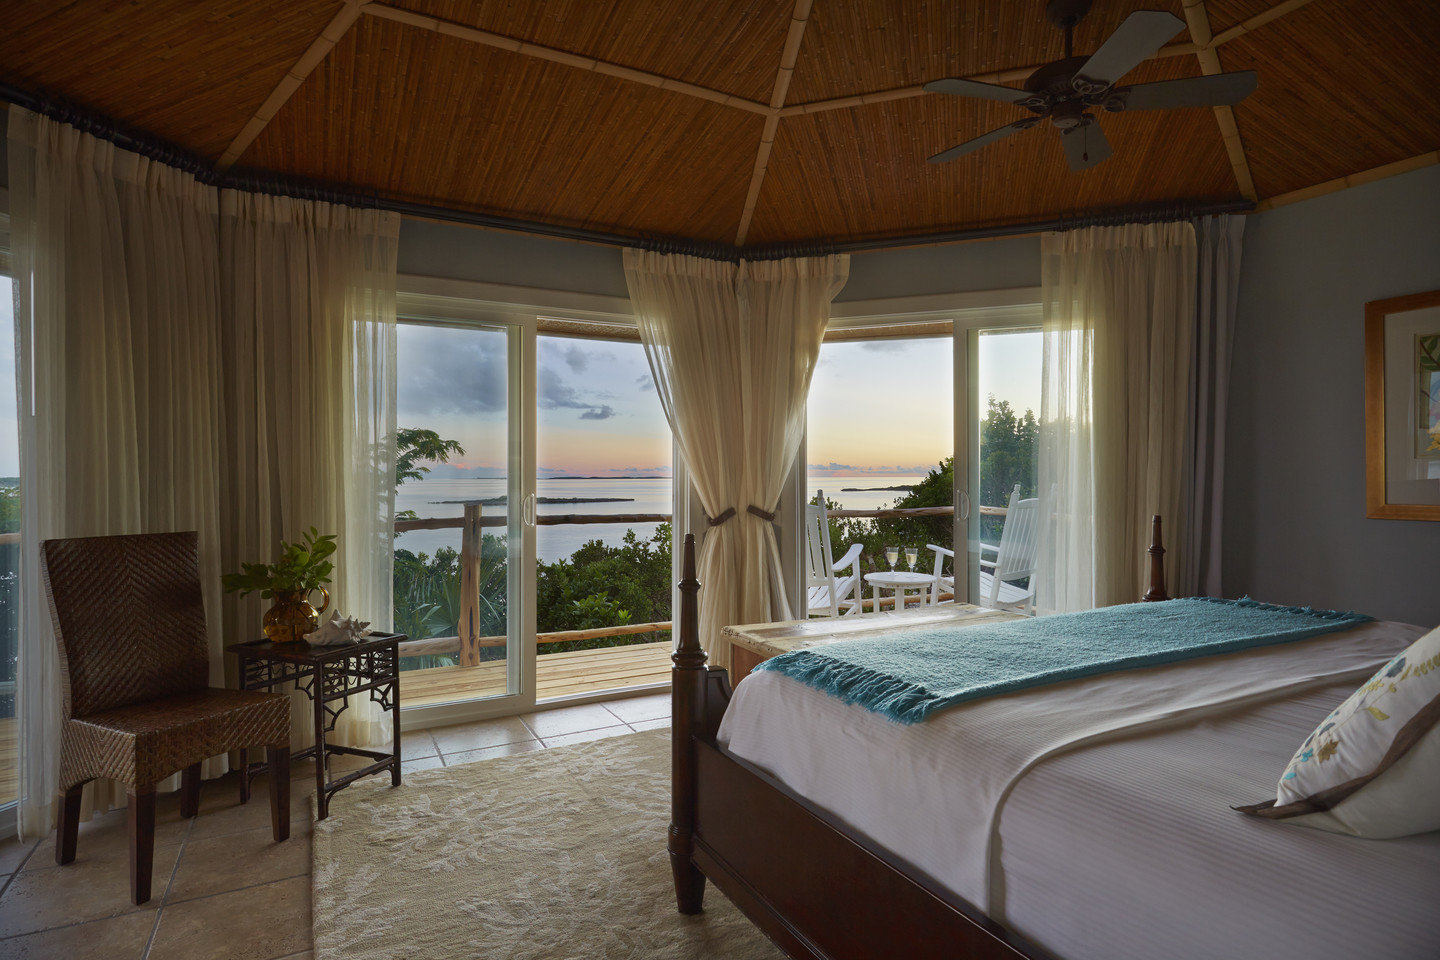 All-Inclusive Resorts Hotels Luxury Travel indoor bed floor room hotel Bedroom ceiling property window estate Resort interior design cottage home Suite real estate Villa furniture